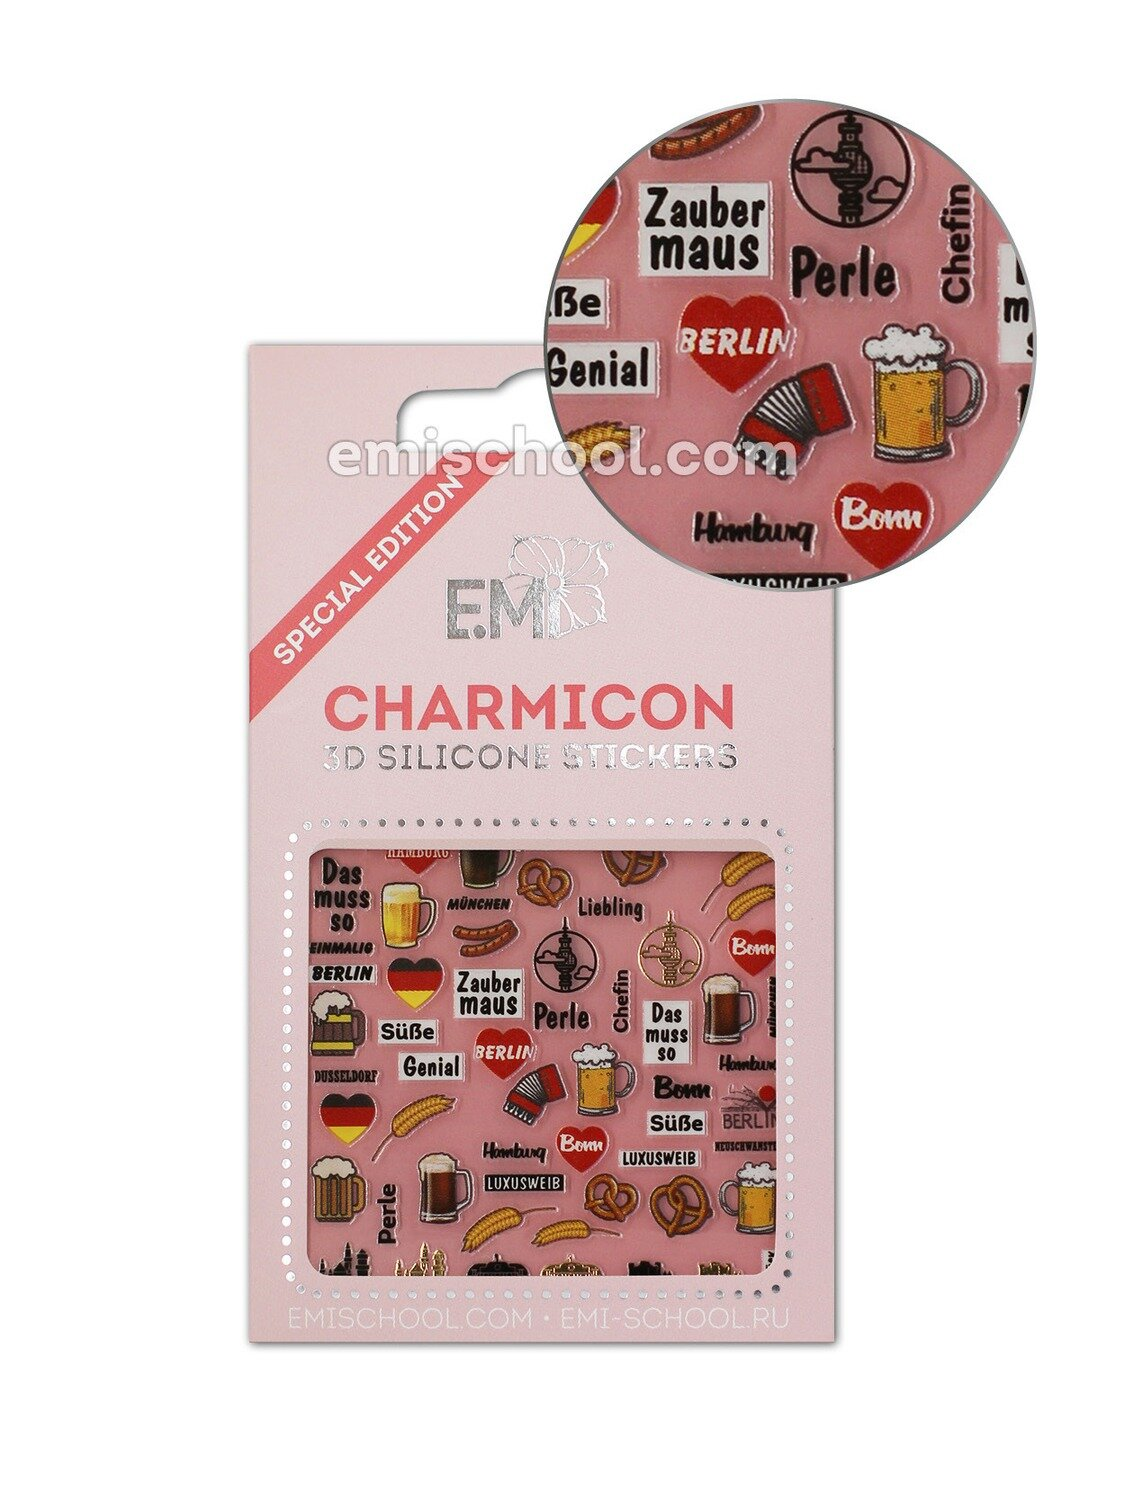 Charmicon 3D Silicone Stickers Germany 1